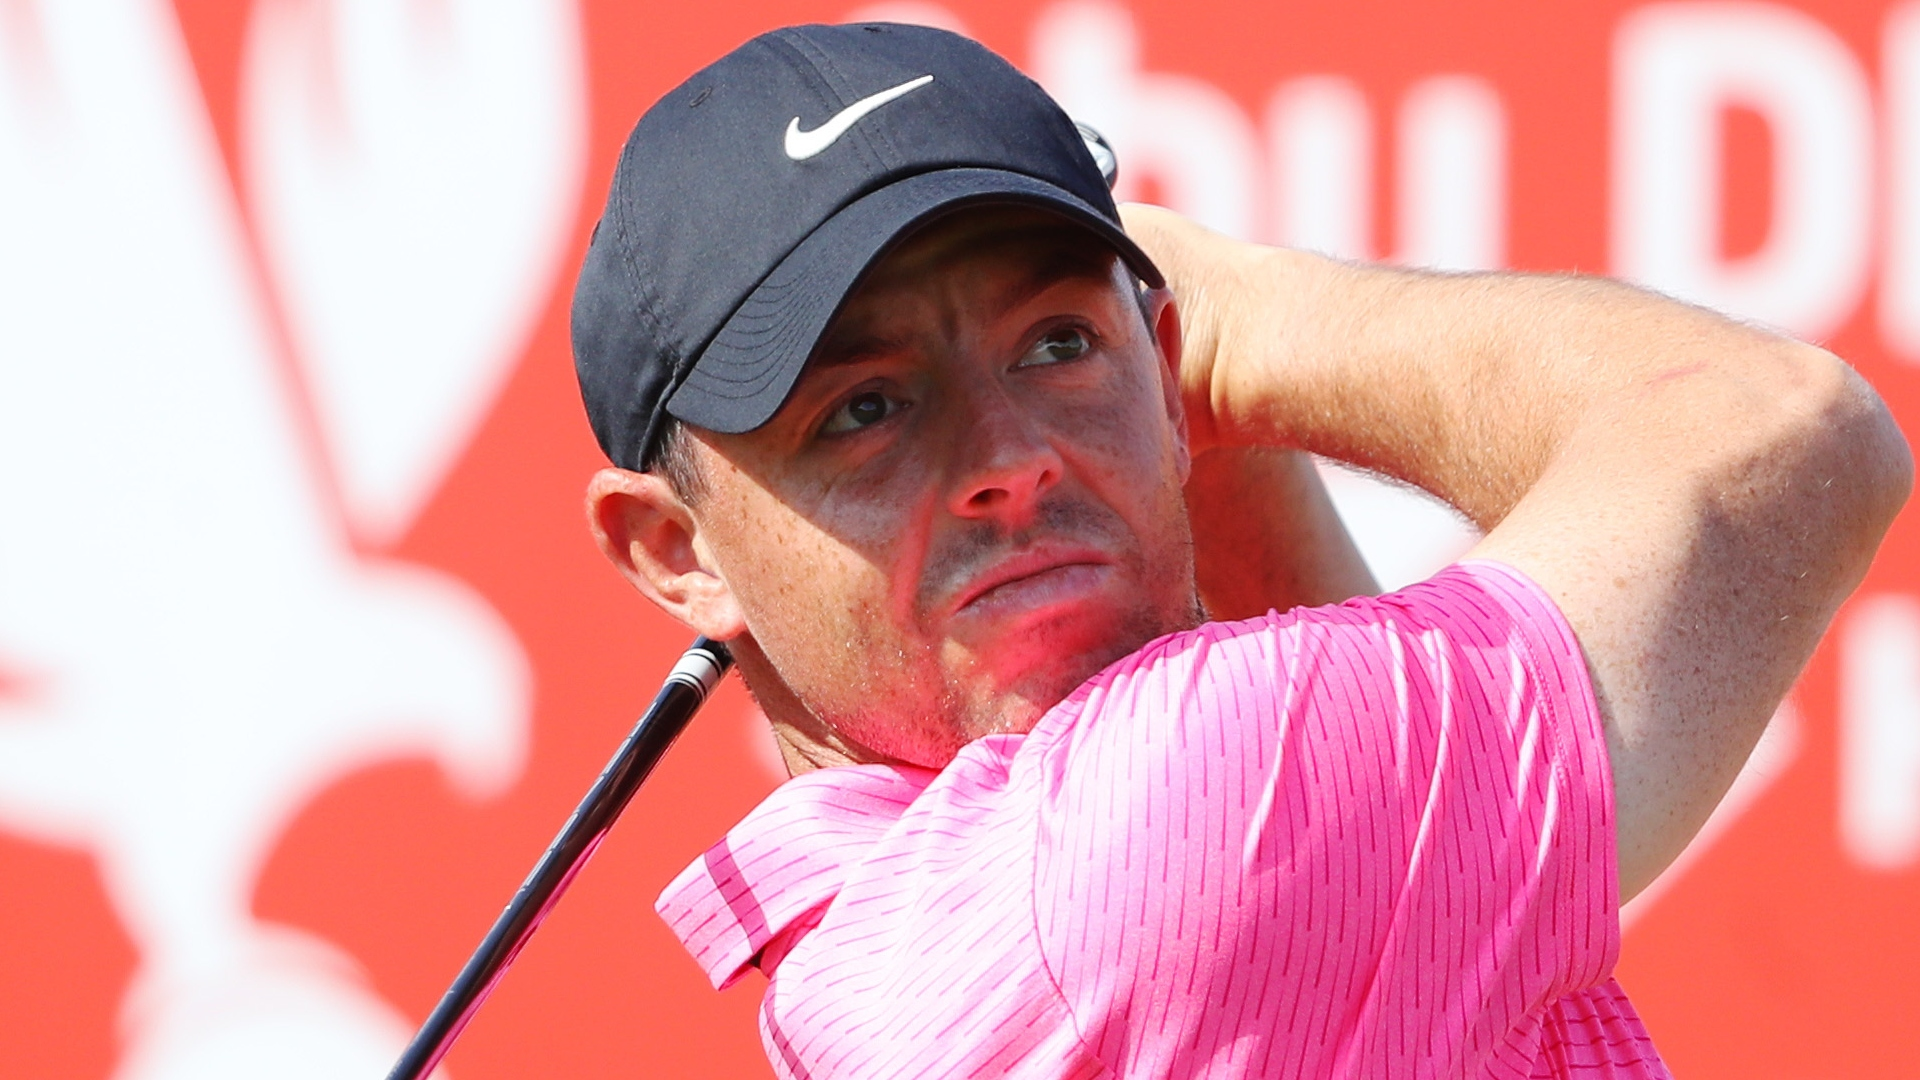 McIlroy hits the front as under-fire Thomas toils after Abu Dhabi fog delay